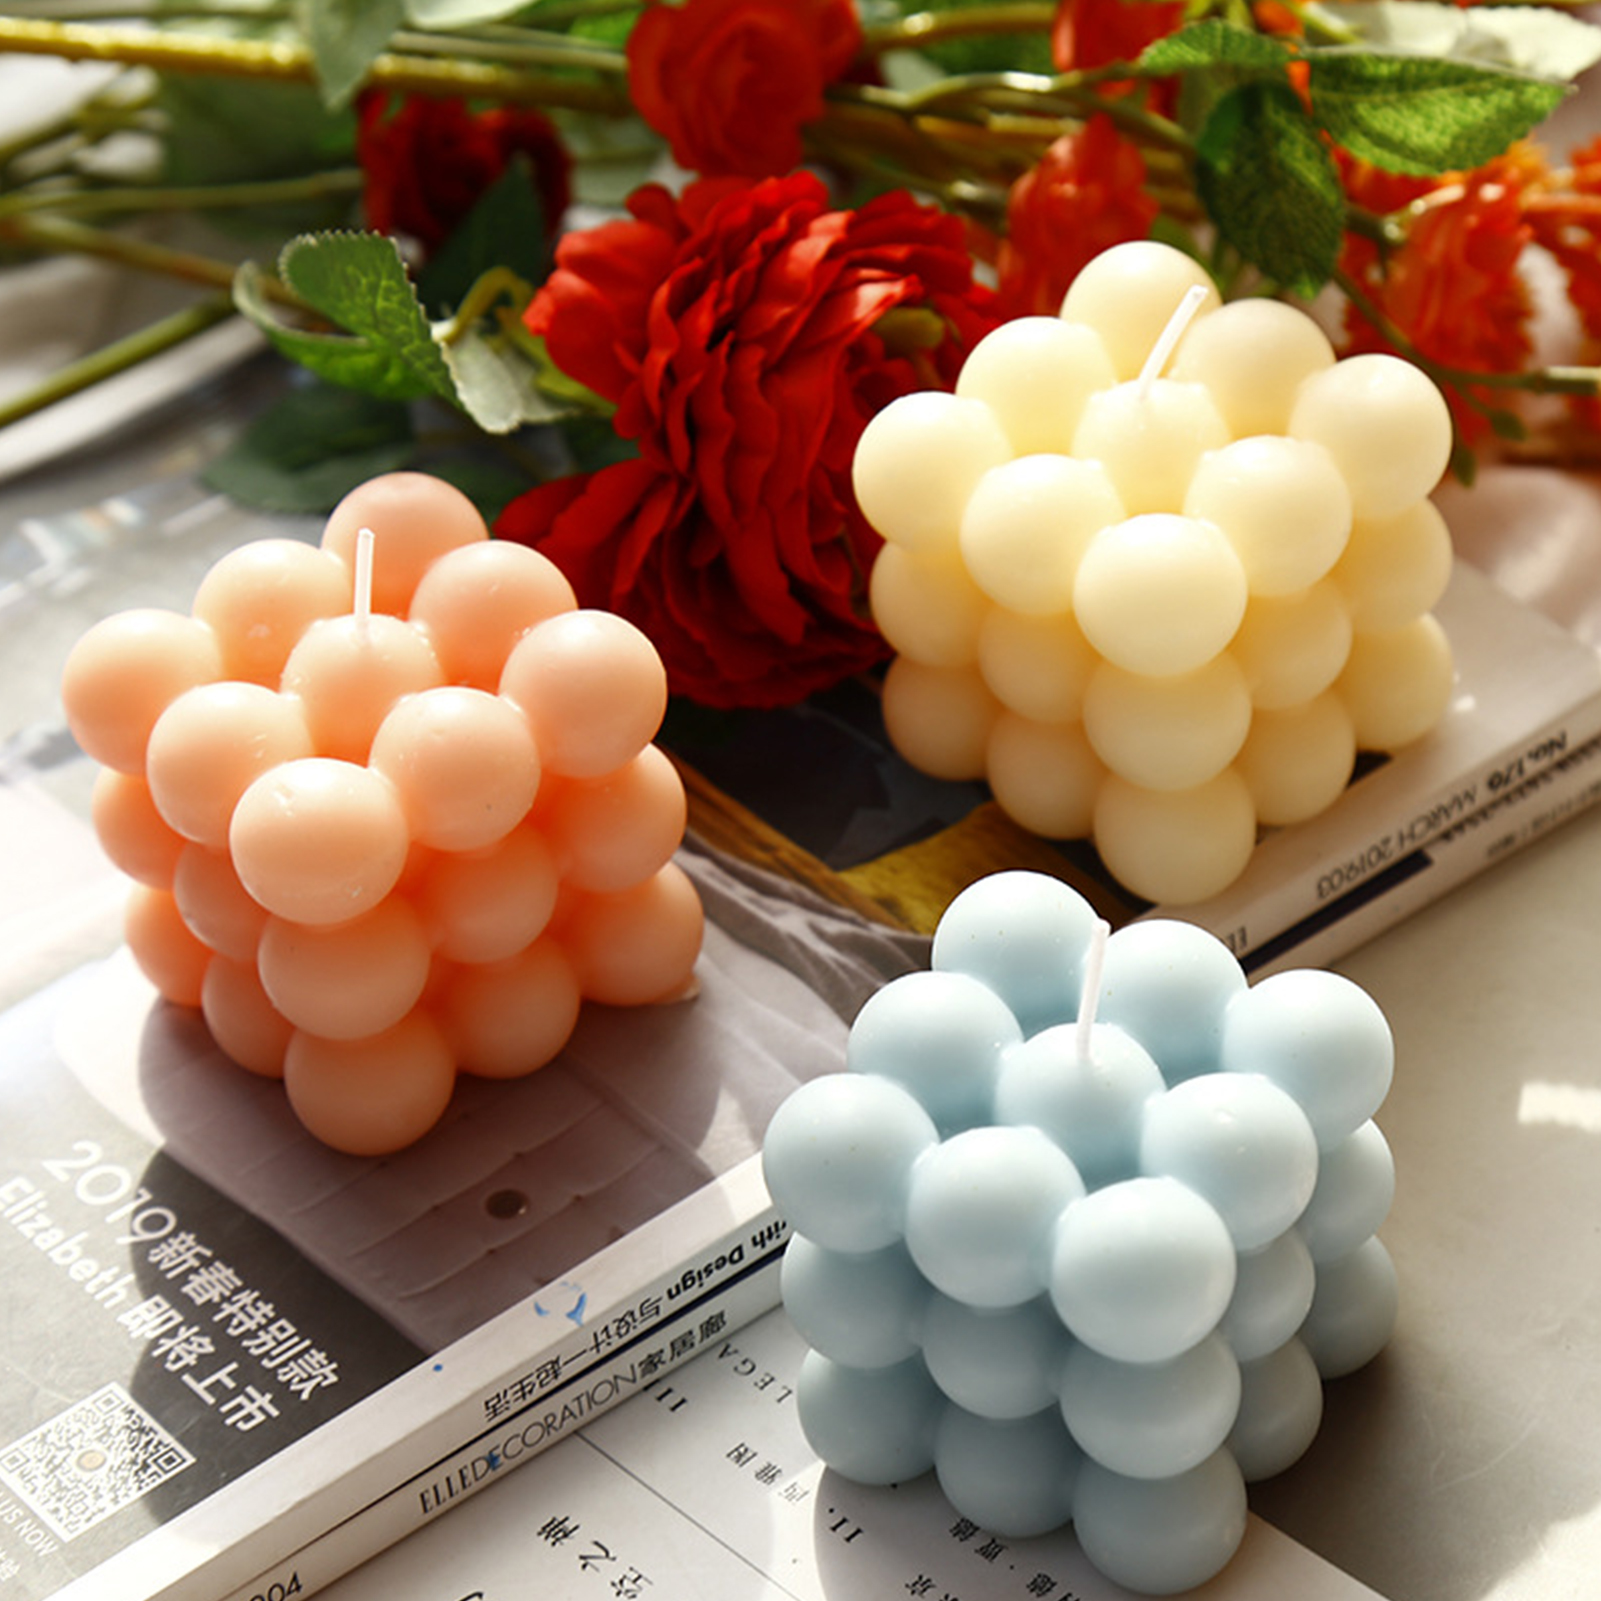 Bubble Cube Candle Cute Soy Wax Aromatherapy Small Candles Scented Relaxing Birthday Gift 1PC